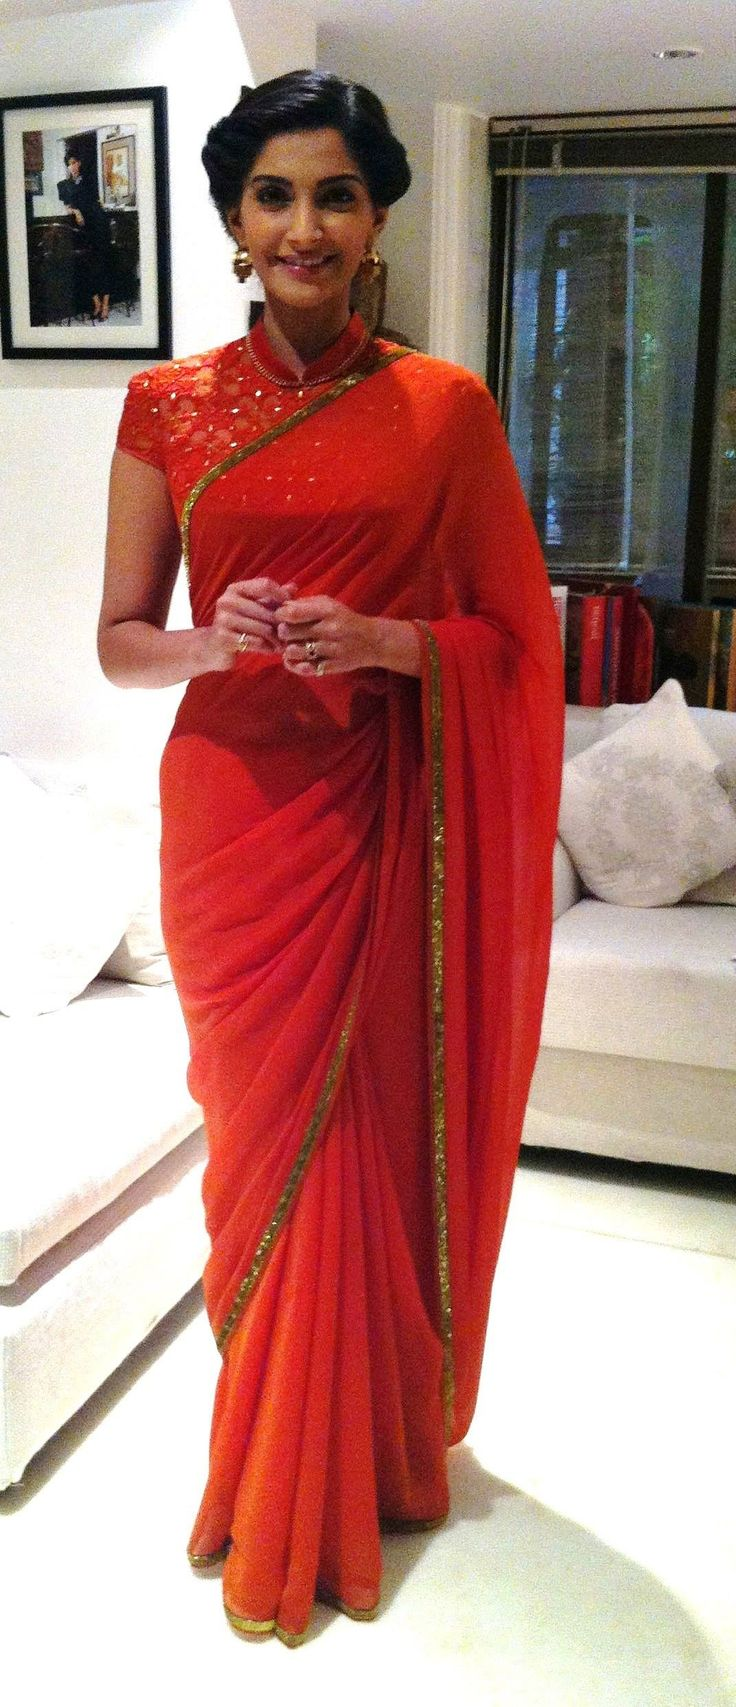 Sonam Kapoor. Simple yet very elegant and graceful in a plain saree. Love the blouse and such a chic look this is.